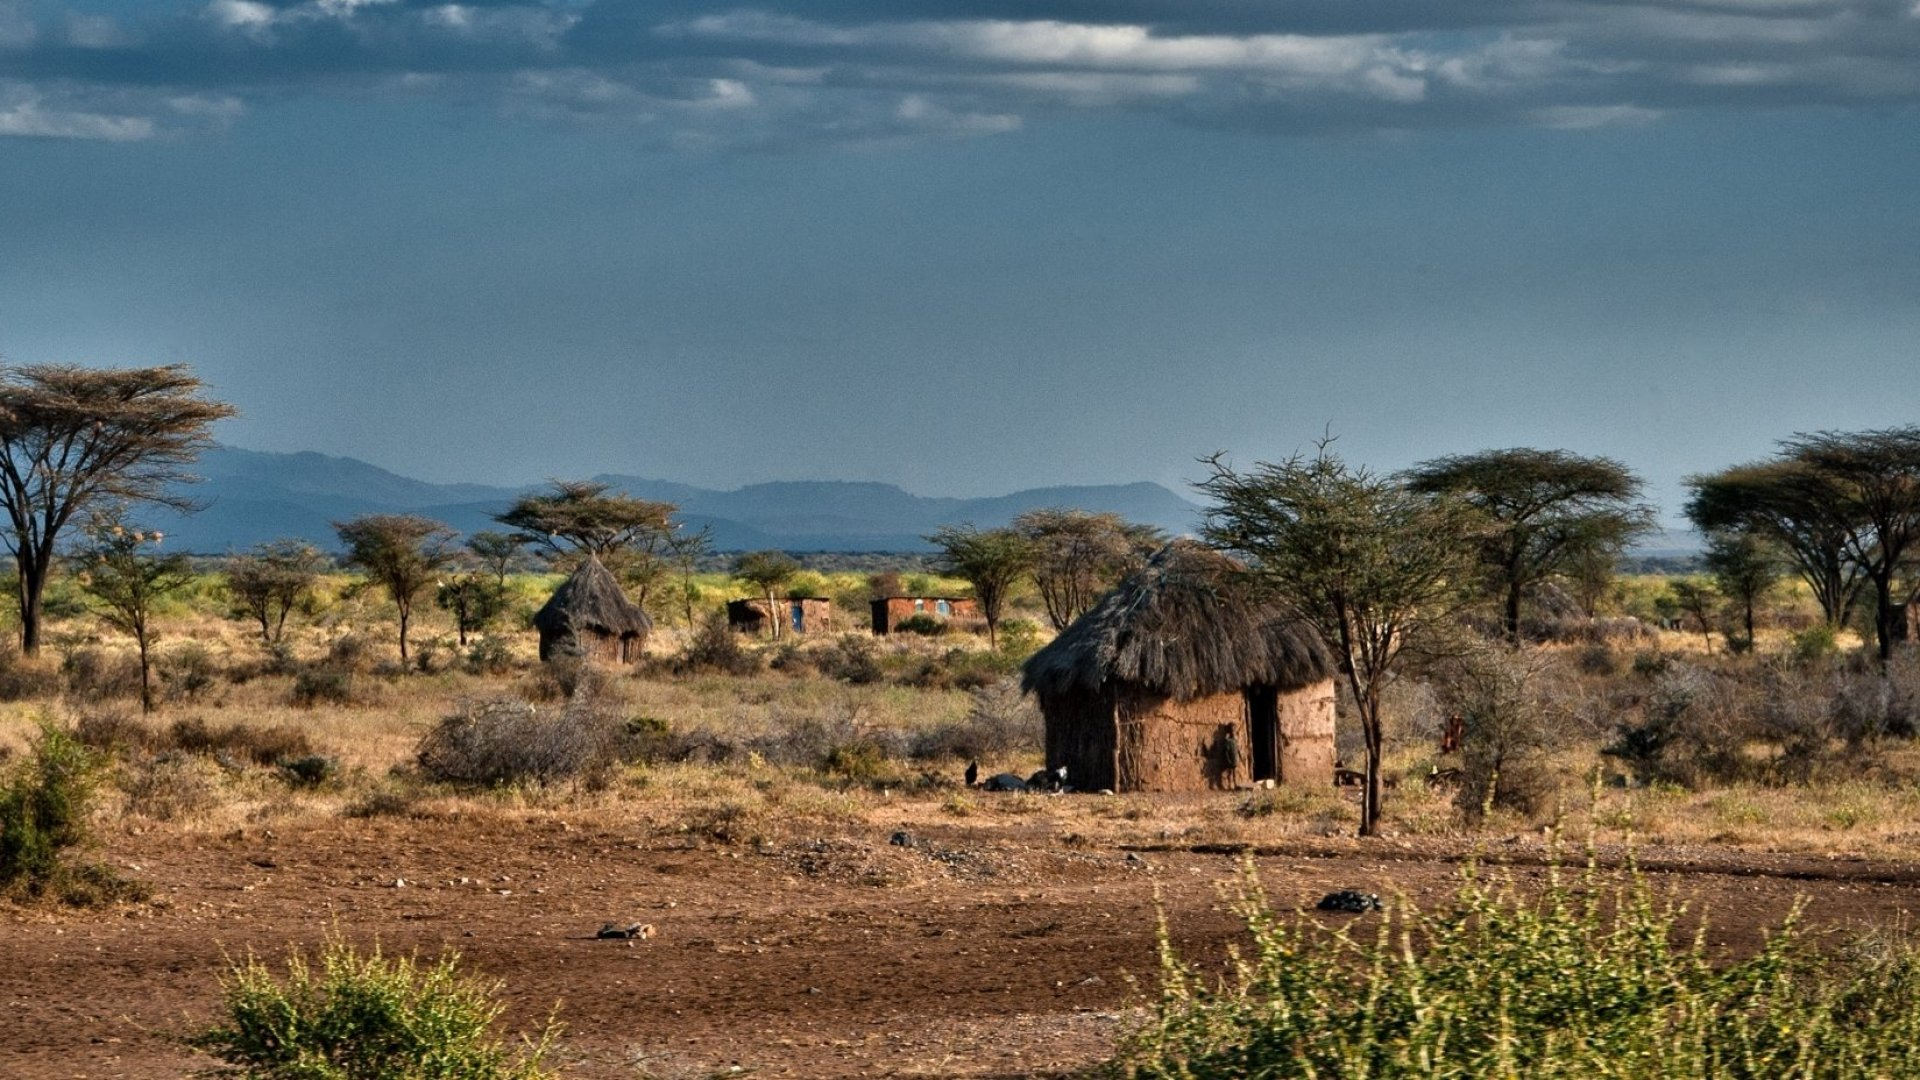 A Kenyan village. GiveDirectly's study will provide cash to more than 17,000 impoverished residents.